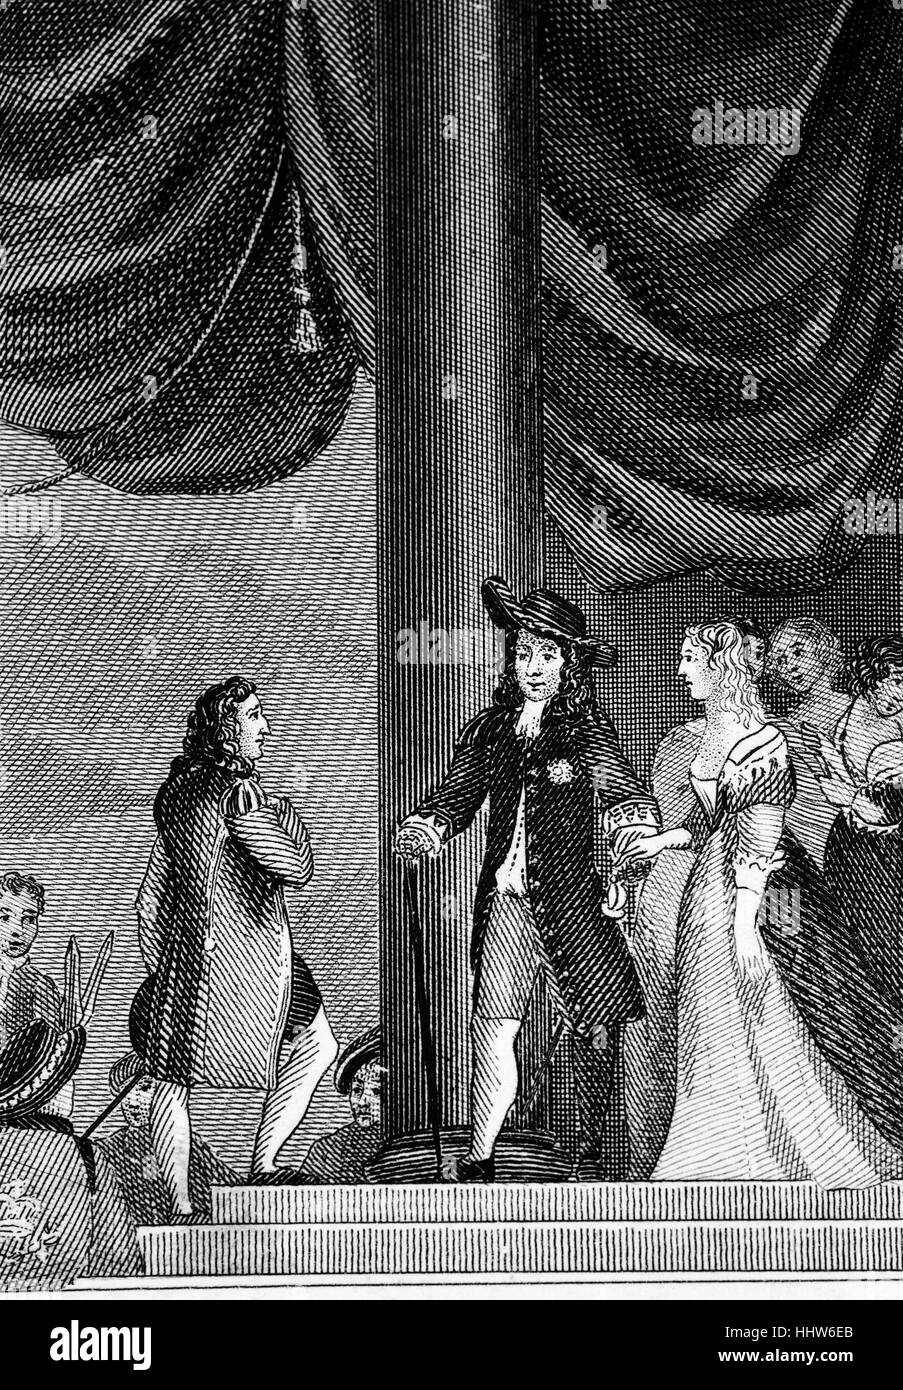 The introduction of Lady Mary(1631 – 1660), the eldest daughter of King Charles I to Prince William II. The marriage took place on 2 May 1641 at the Chapel Royal in London but was reputedly not consummated for several years because the bride was only nine years old. Stock Photo